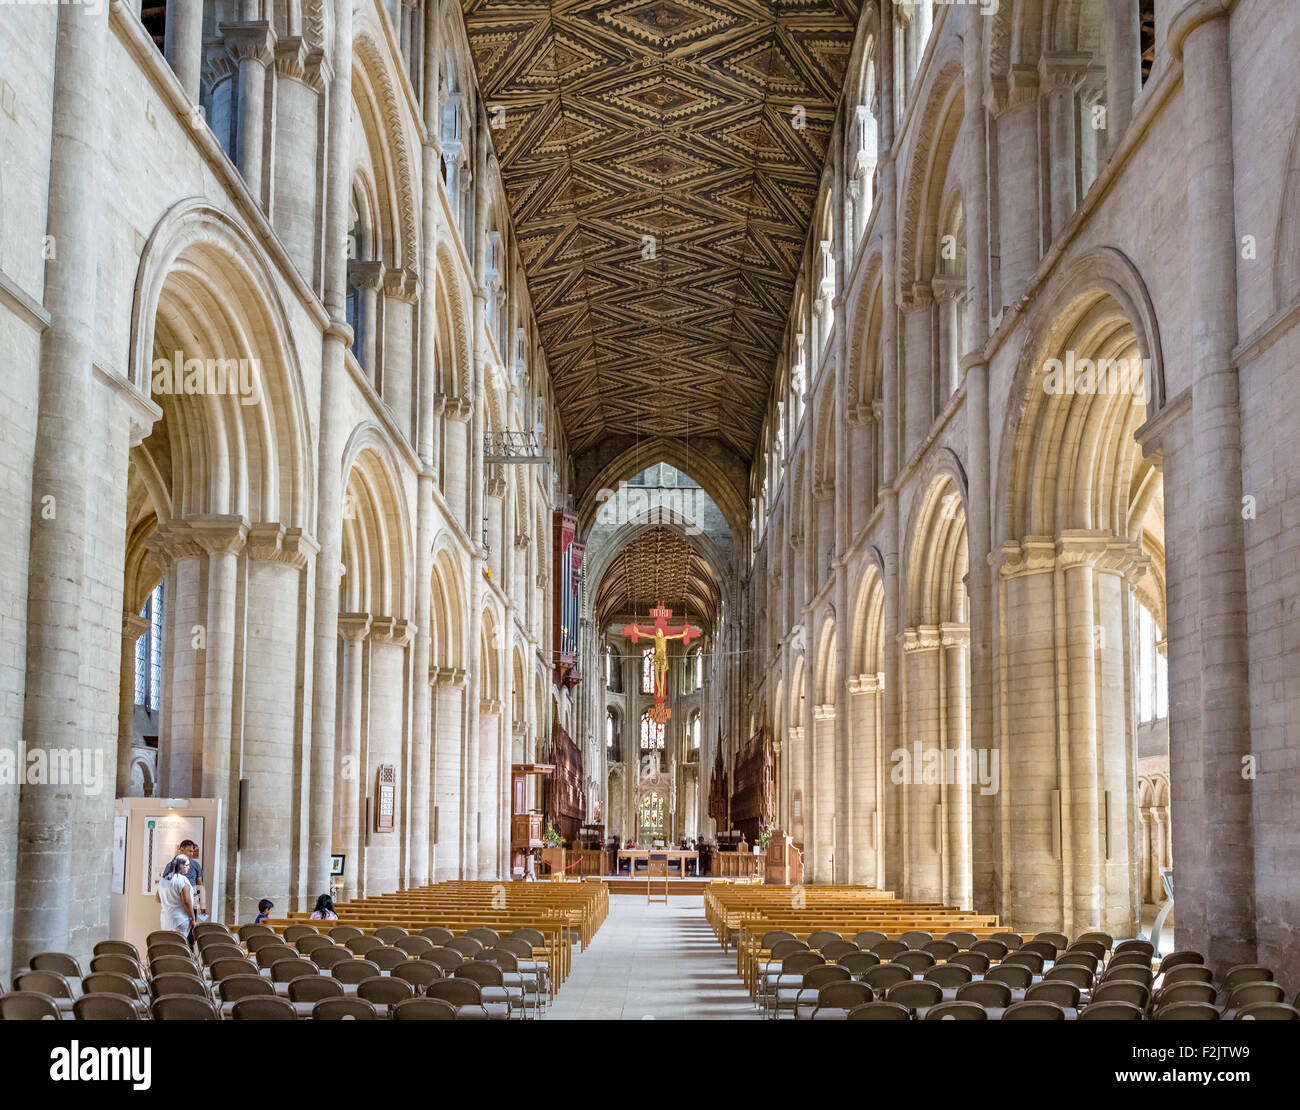 The nave of Peterborough Cathedral, Peterborough, Cambridgeshire, England, UK - Stock Image